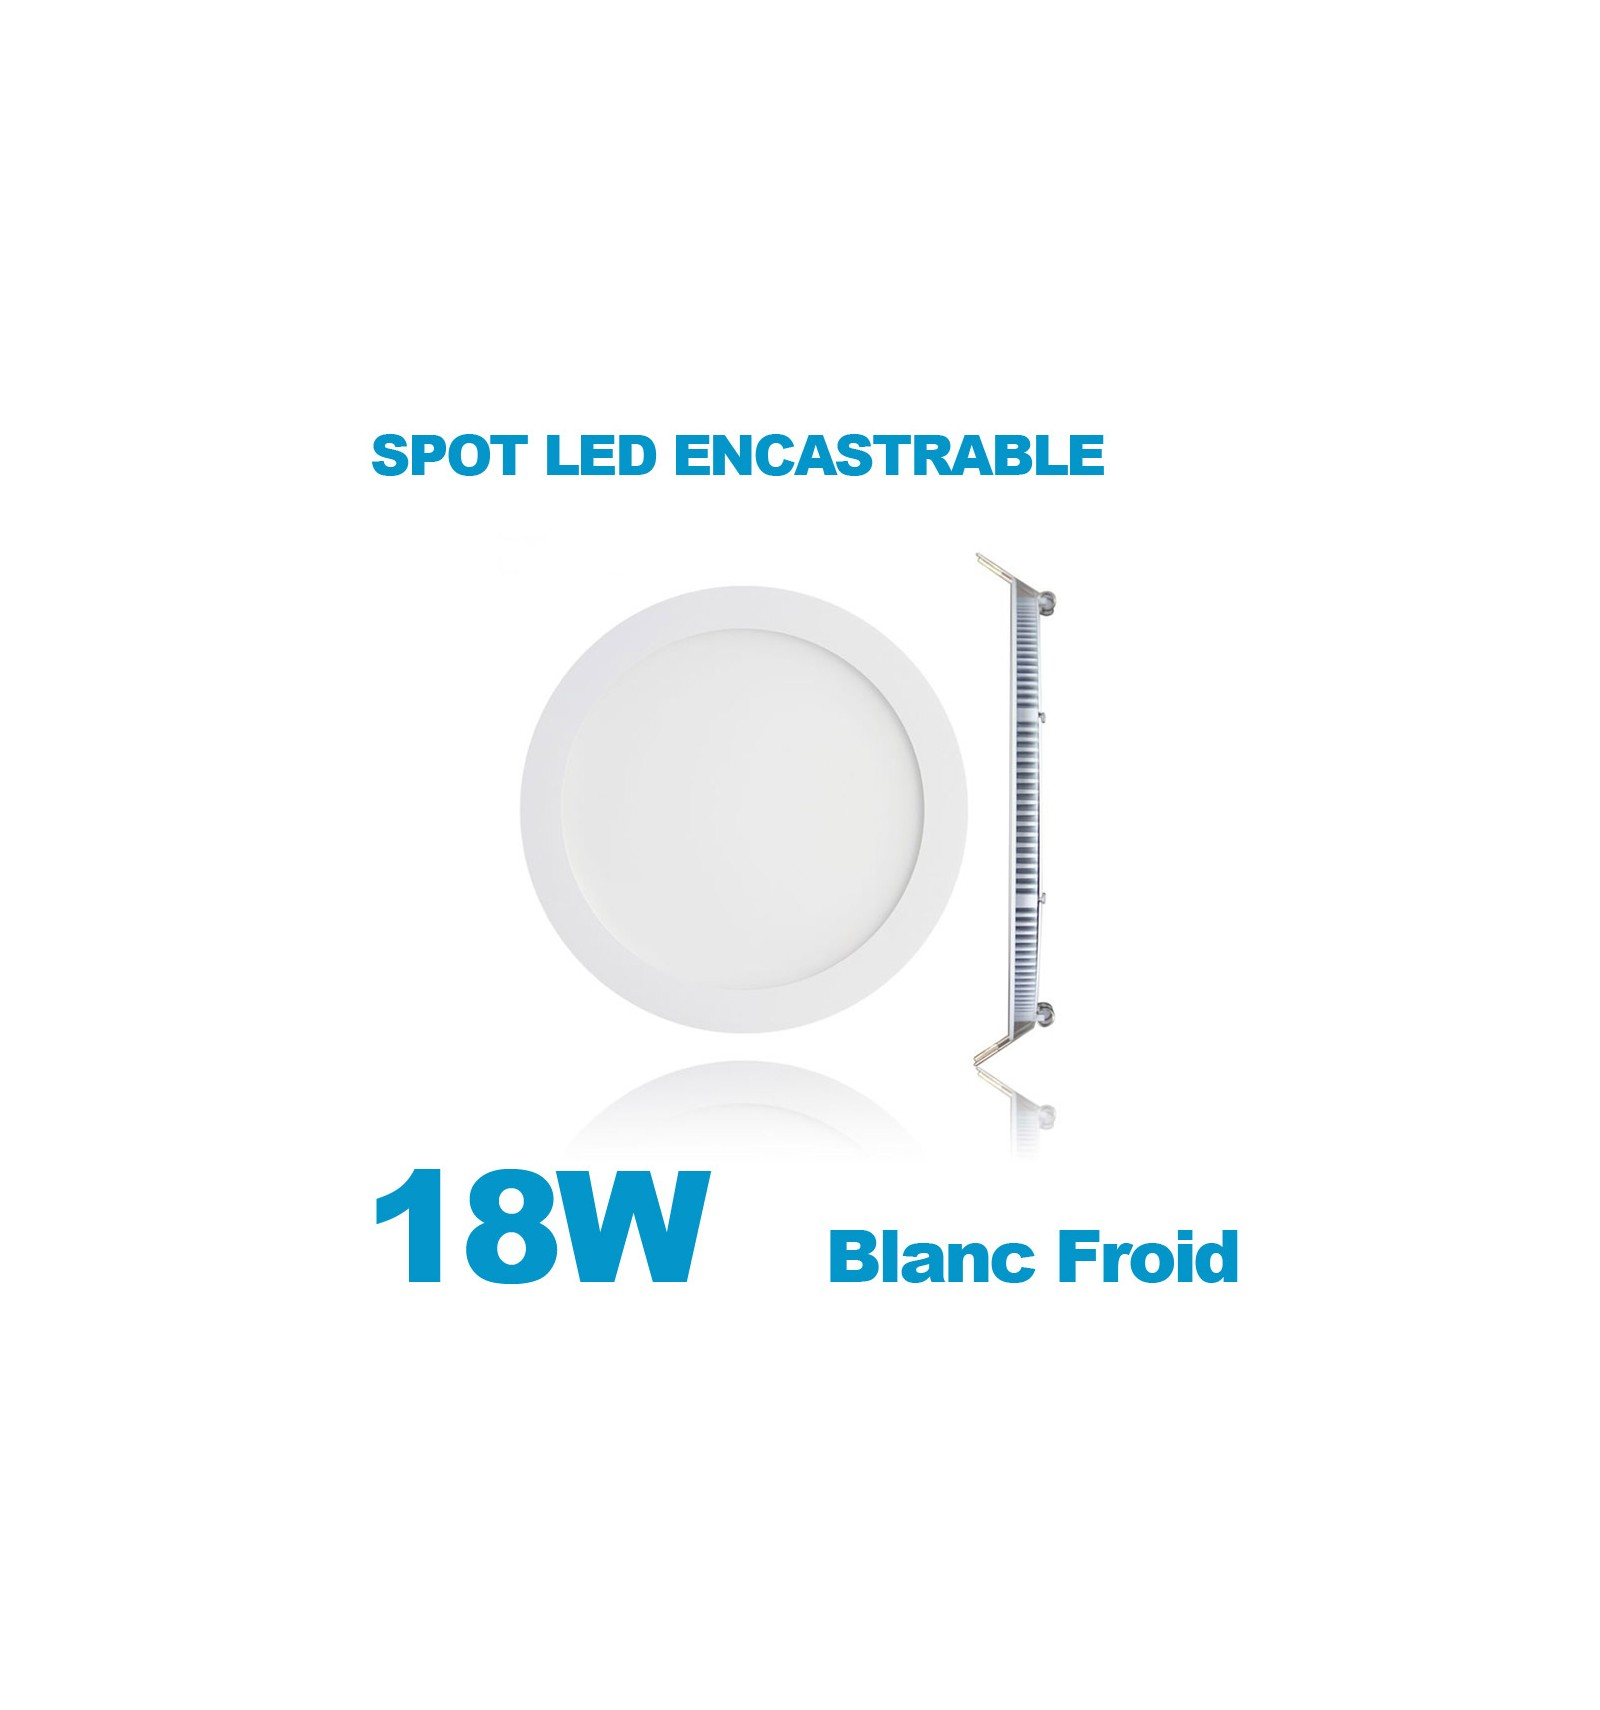 Spot encastrable led downlight panel extra plat 18w blanc froid 6000k - Spot led encastrable extra plat ...